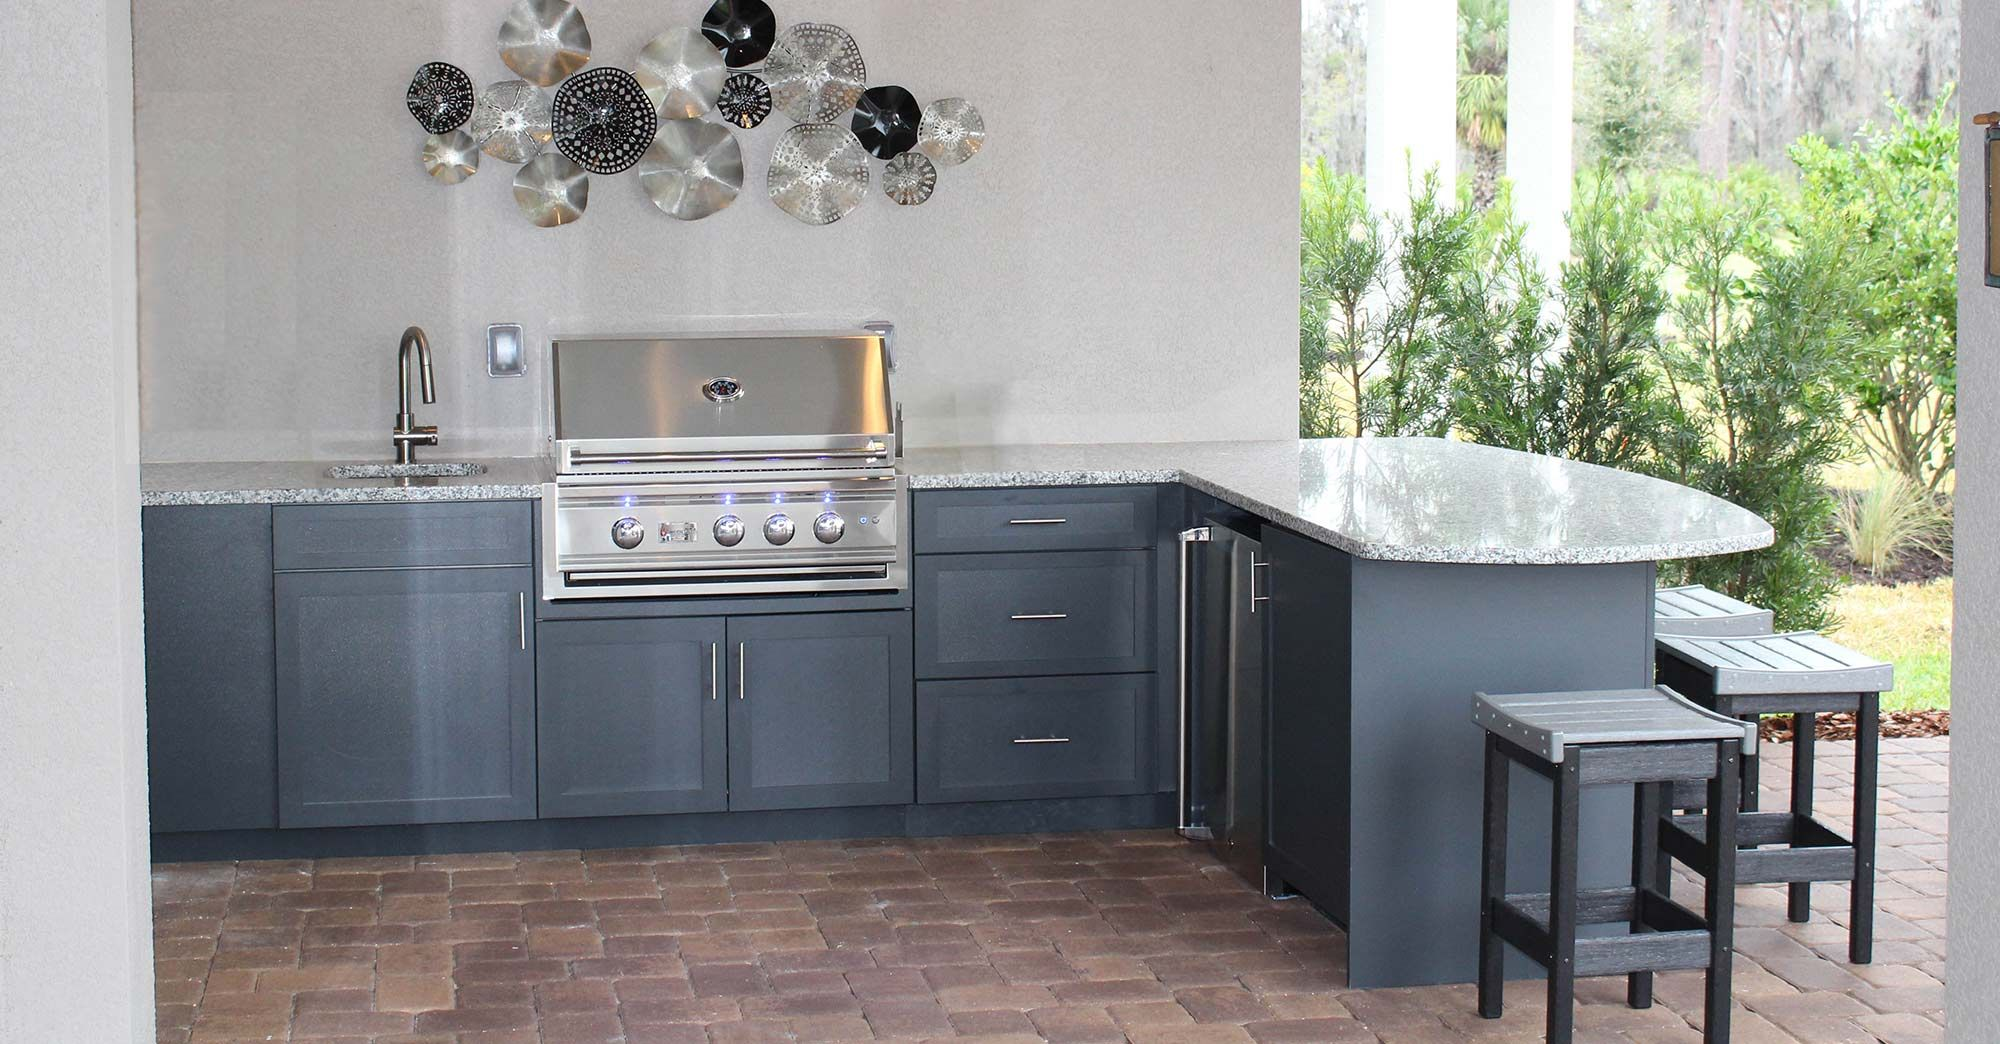 This outdoor kitchen features our custom weatherproof ...